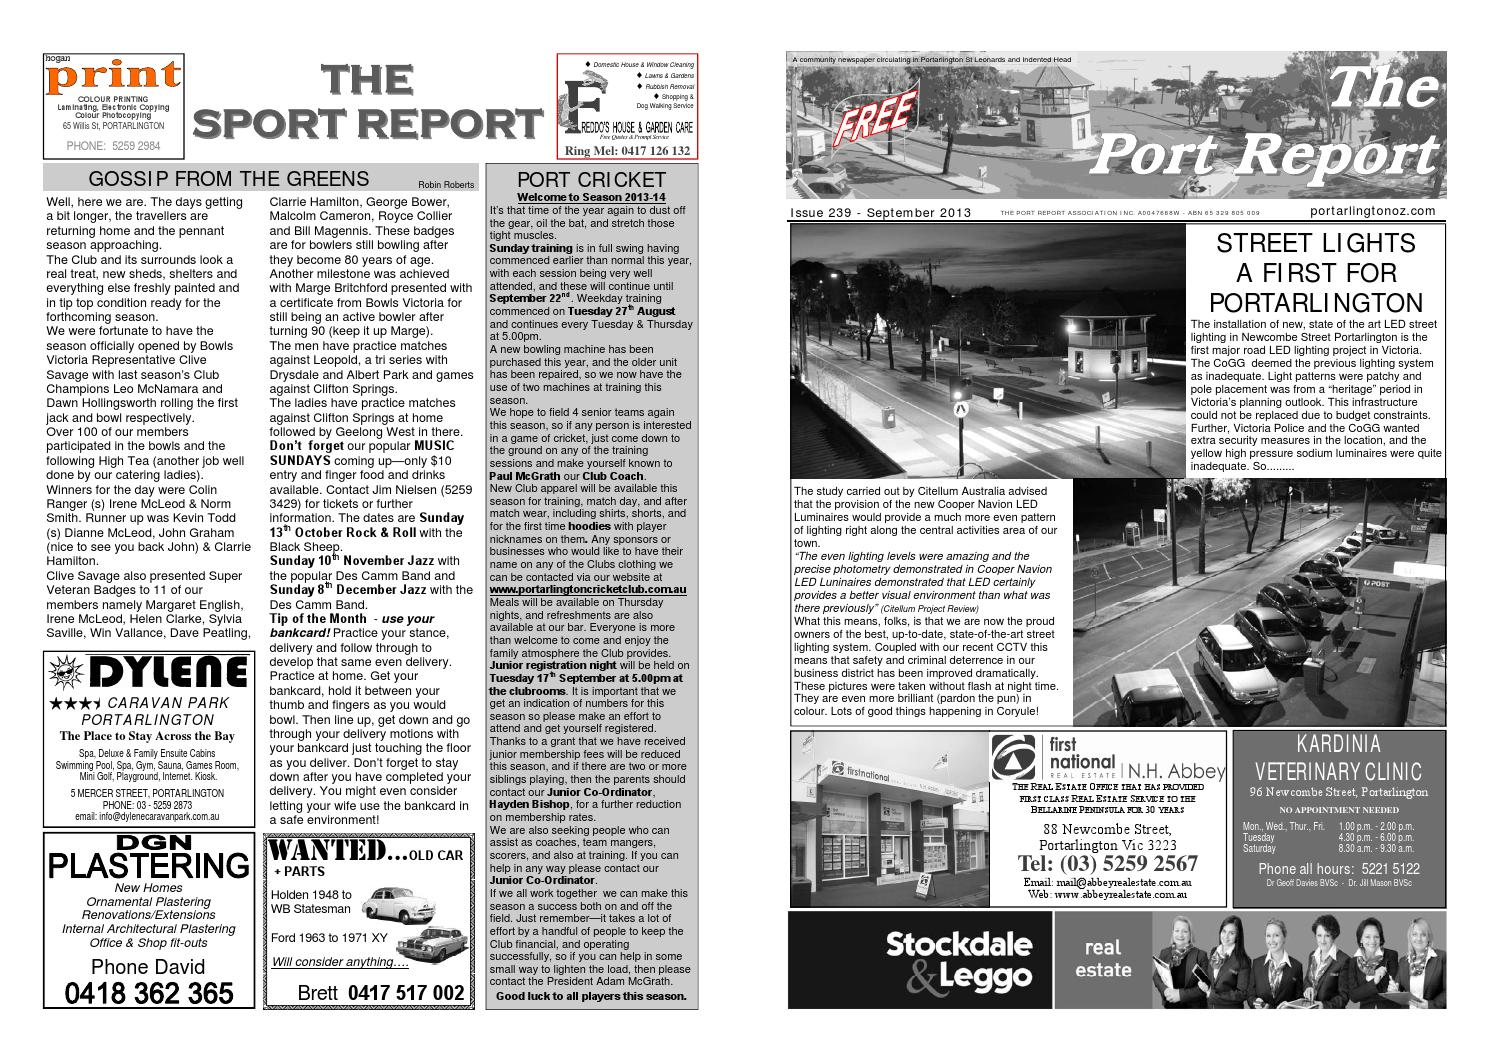 239. Port Report September 2013 by The Port Report - issuu 64ee377260d2d